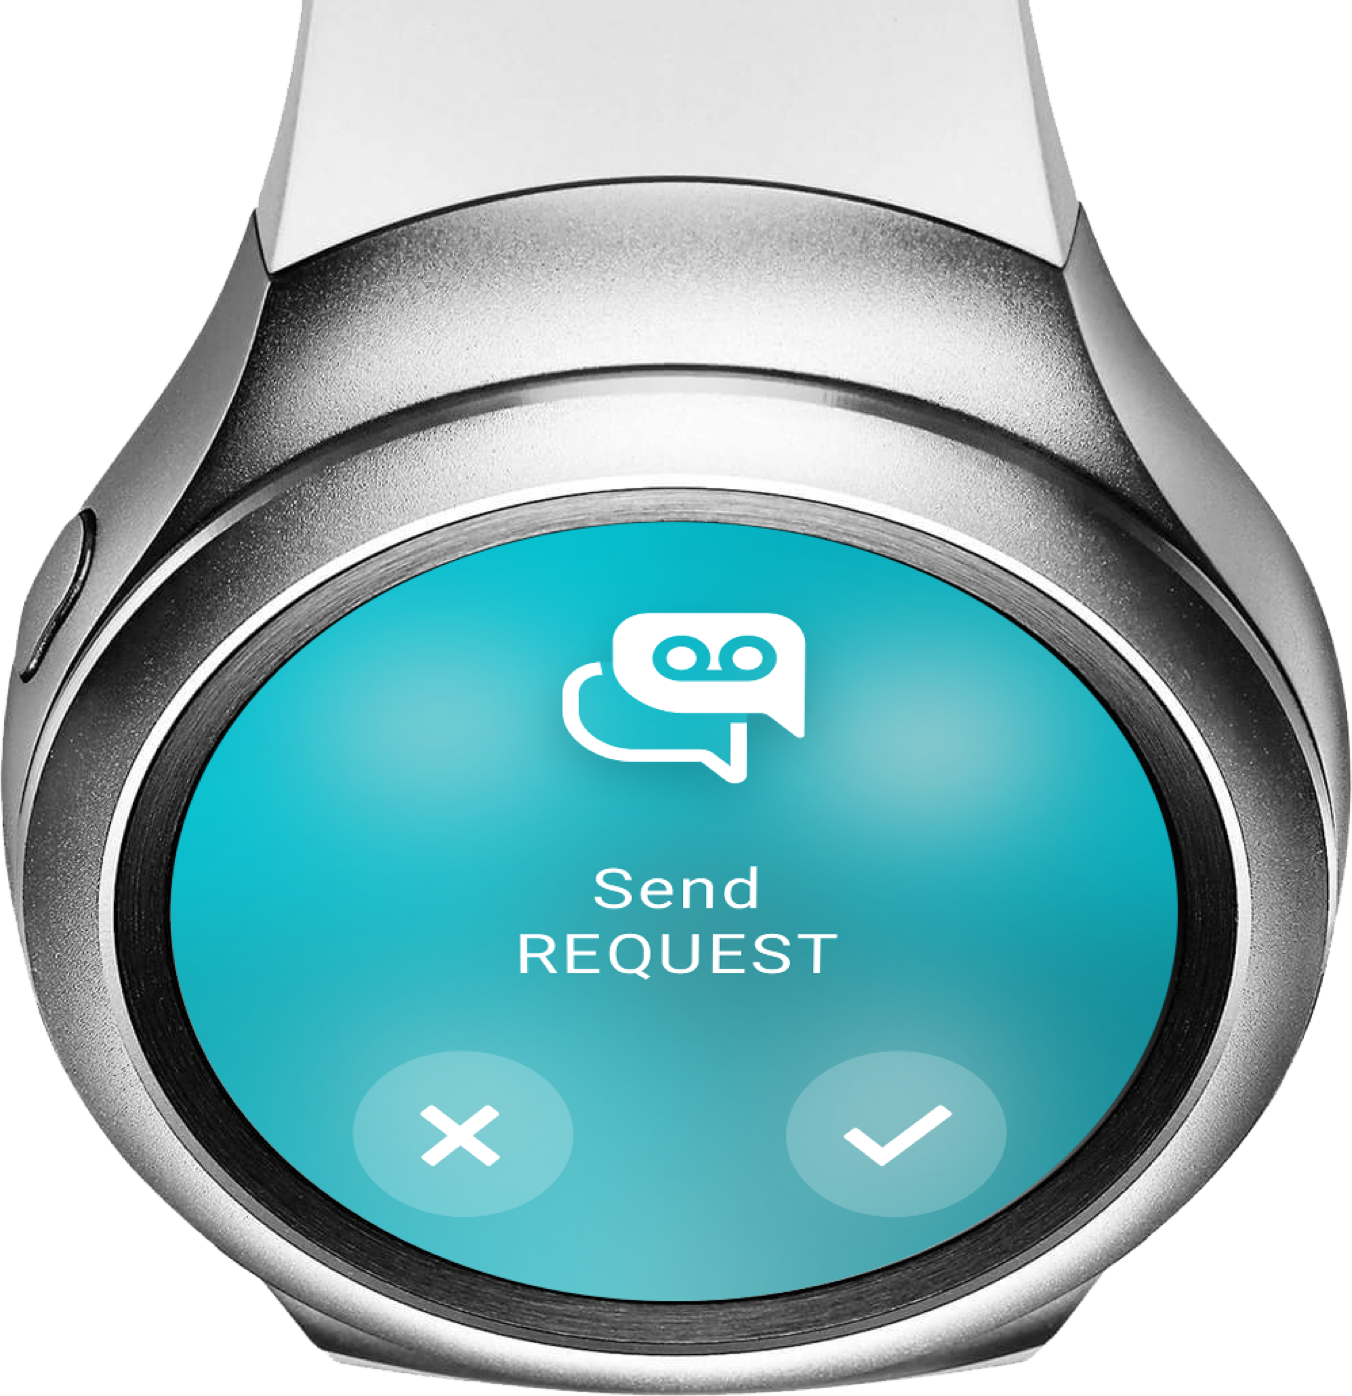 """Smartwatch """"Send Request"""" - ReAct """"Call to Action"""" App"""